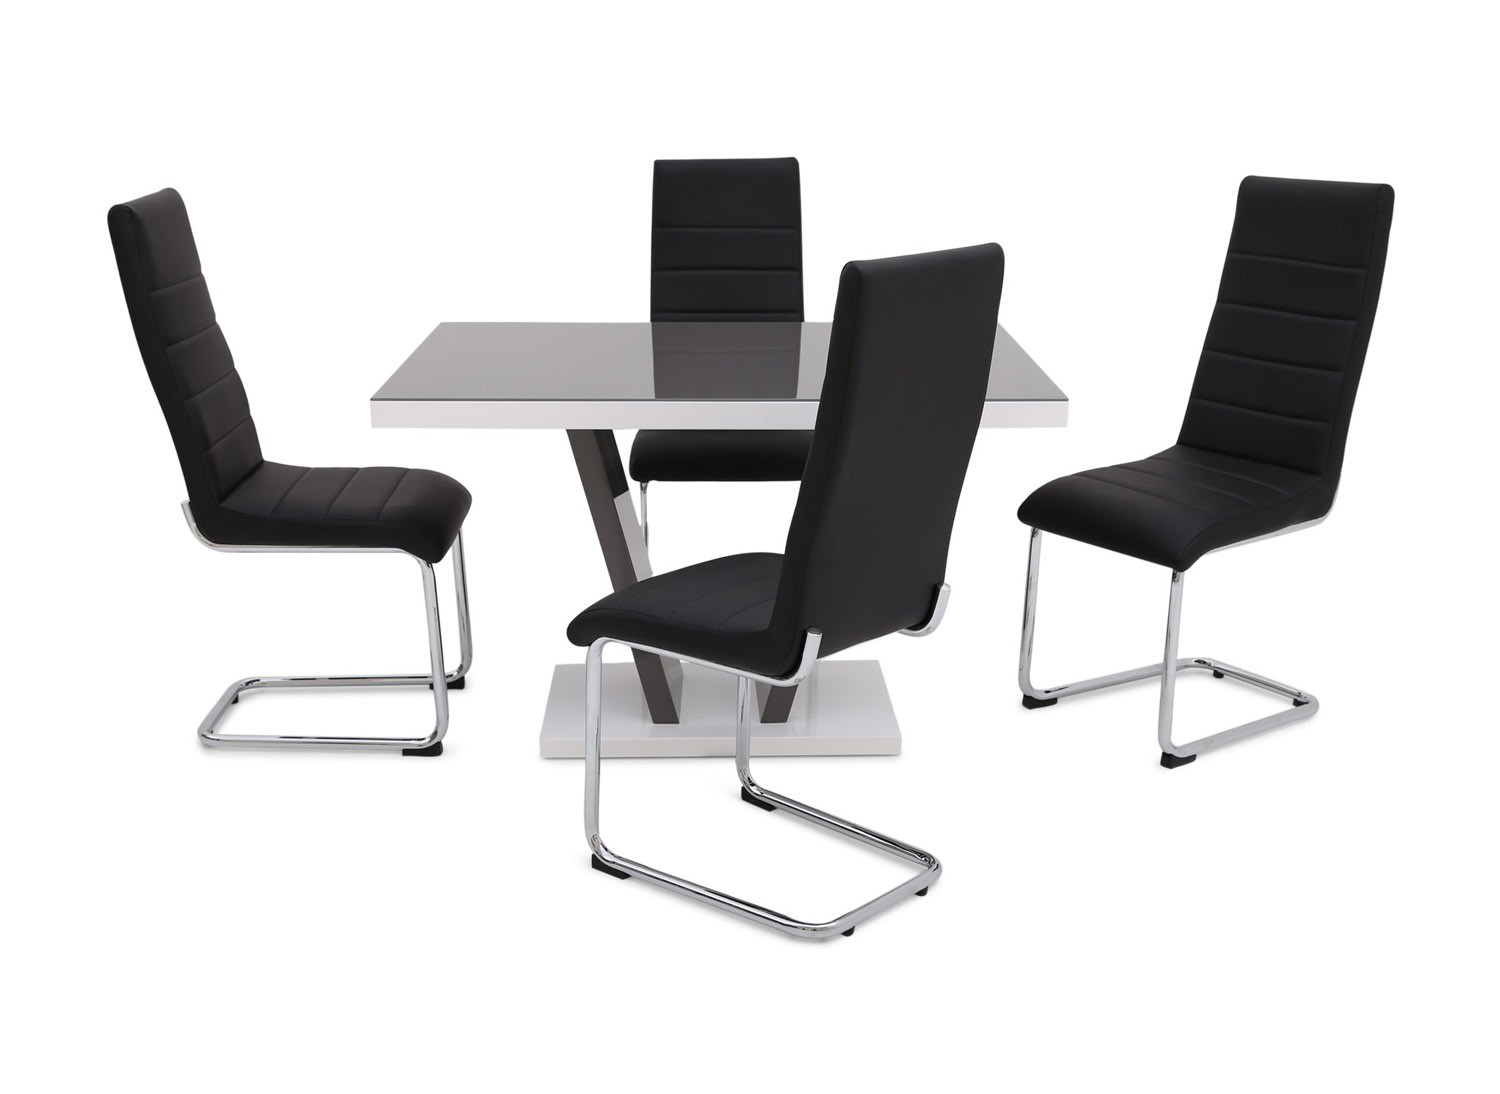 https://www.firstfurniture.co.uk/pub/media/catalog/product/f/a/fairmont_valentino_grey_high_gloss_dining_table_4_hugo_grey_chairs.jpg